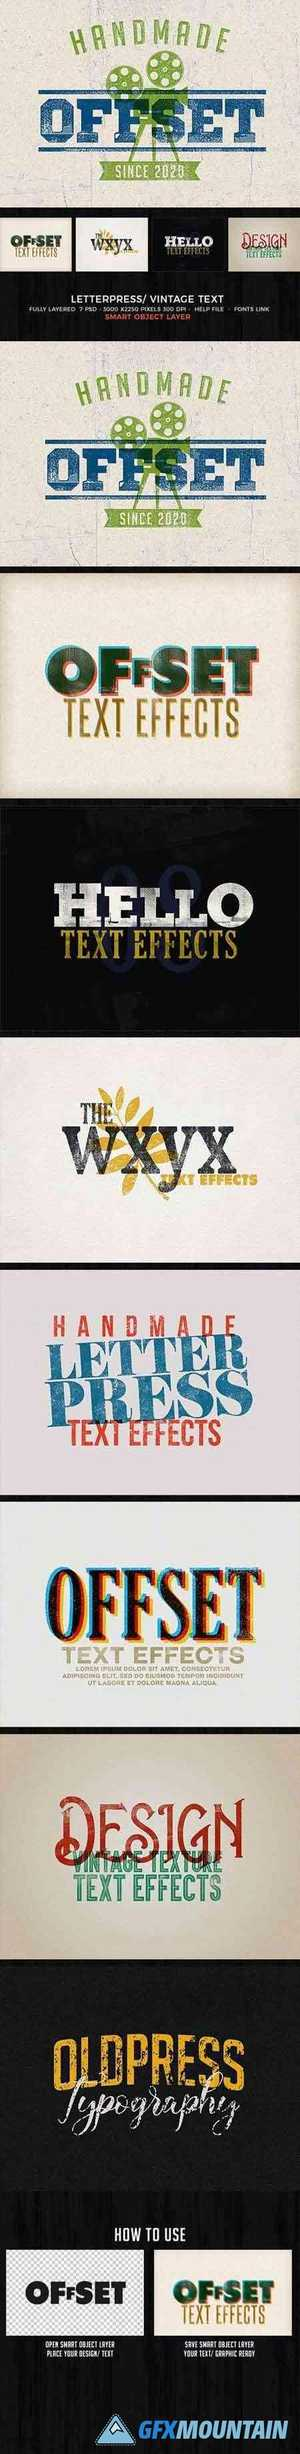 Letterpress - Vintage Text Effects 28019371